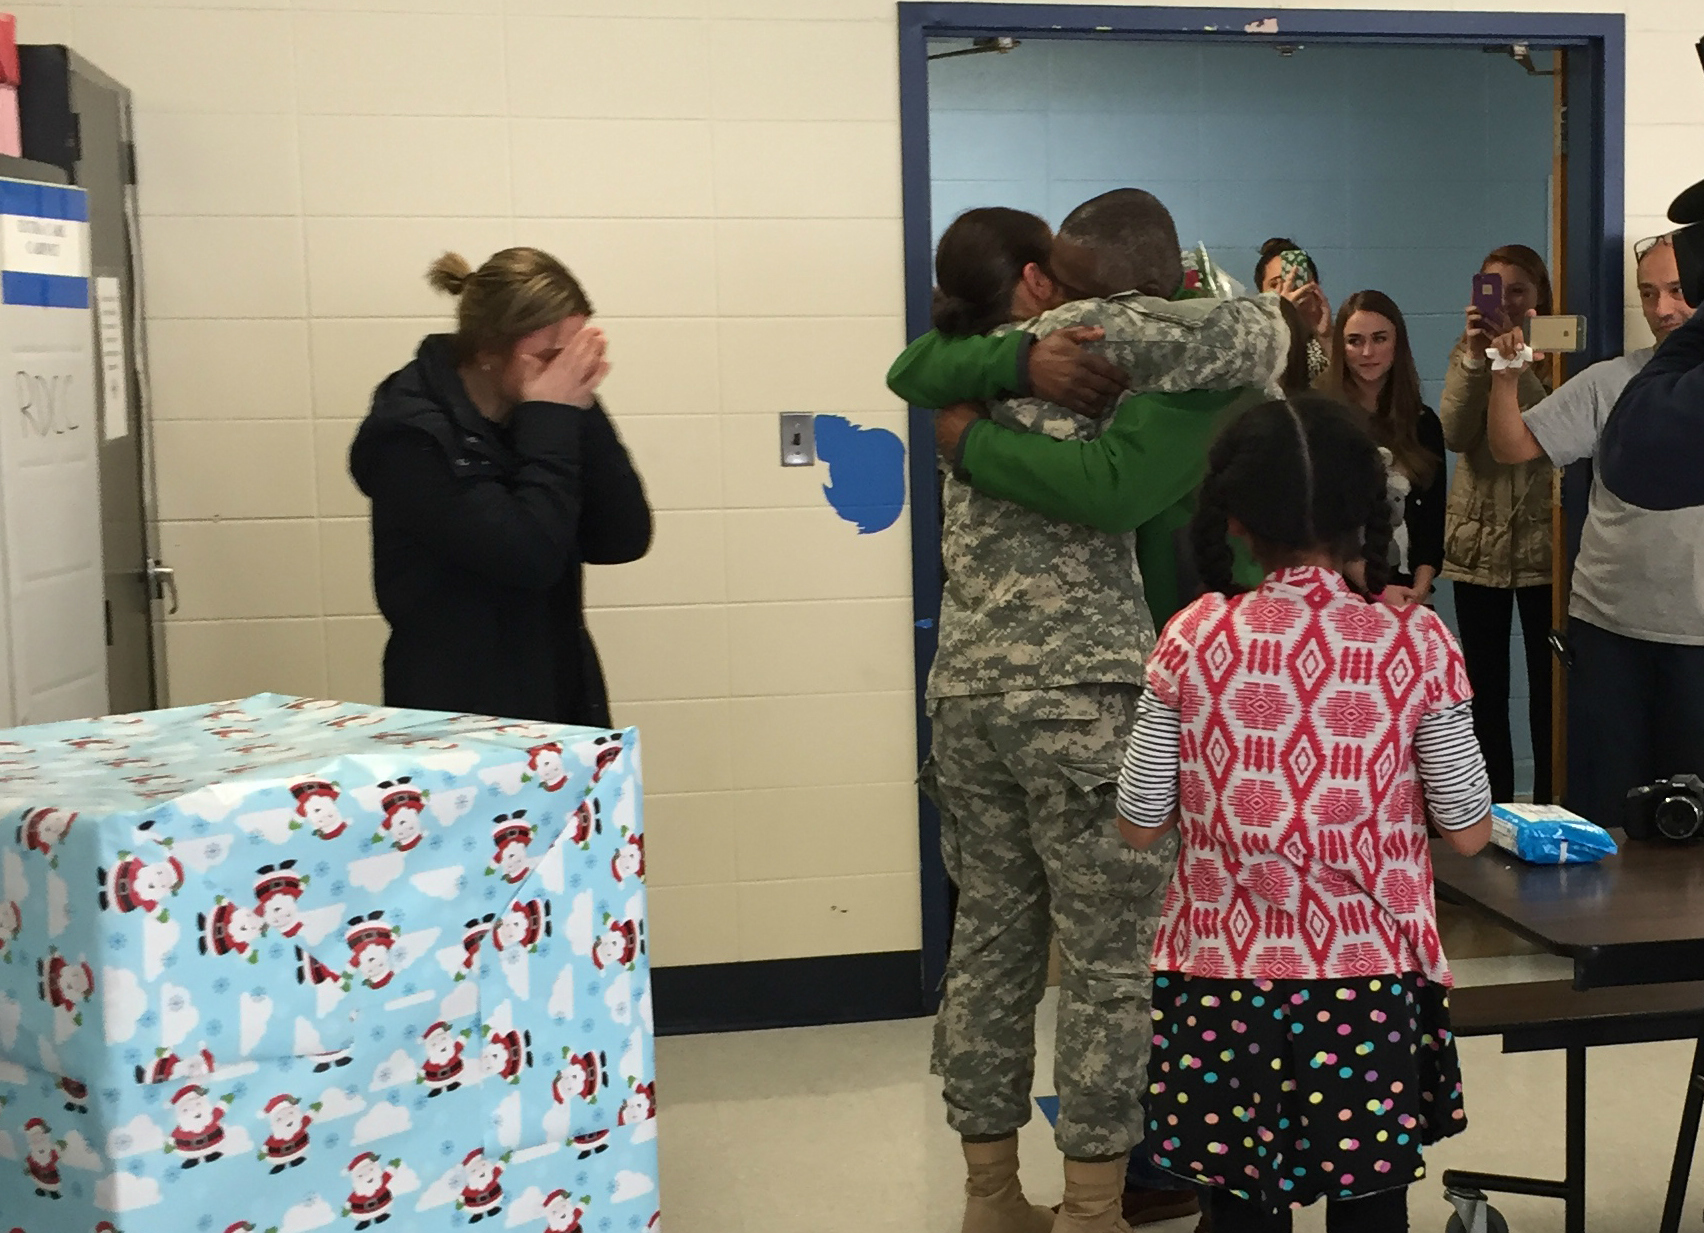 88dd20237d58c429f314_Jefferson_Military_Surprise_-_Salome_and_Dad_Embrace.jpg